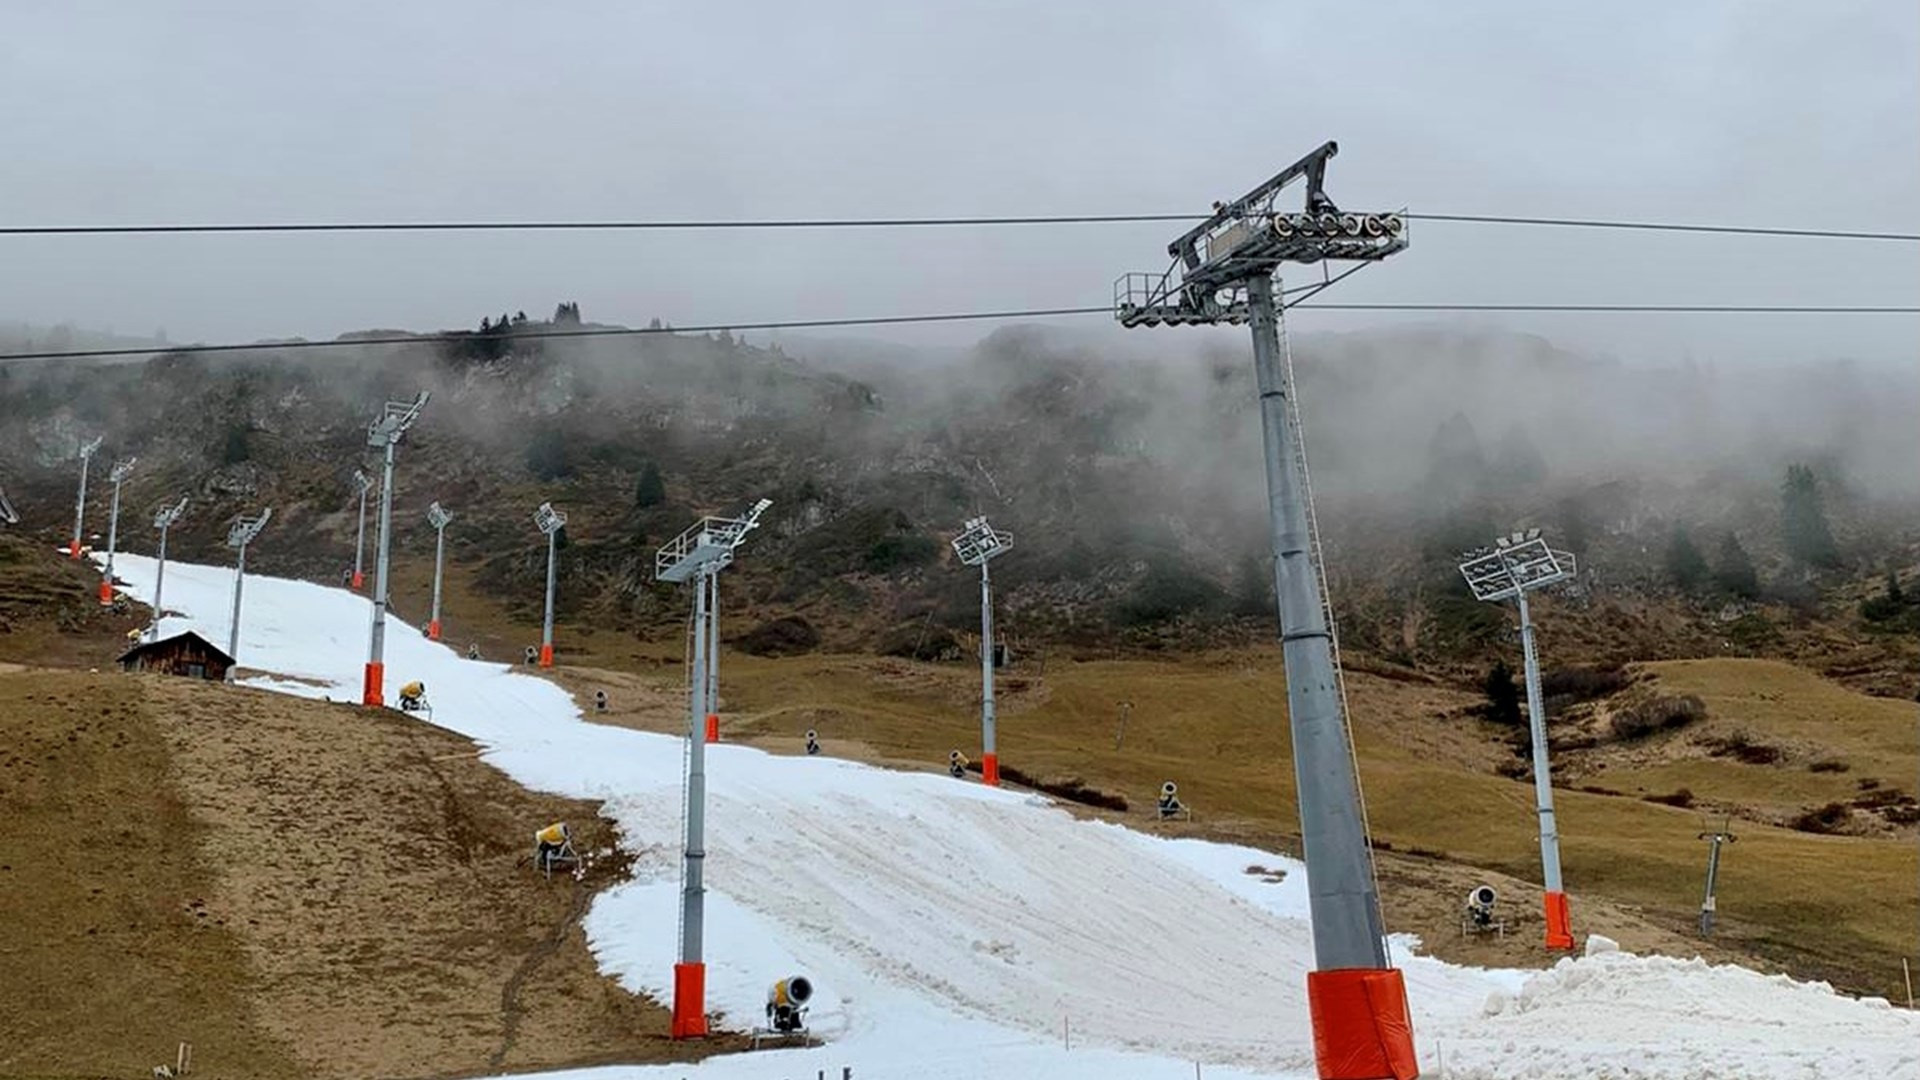 Mild temperatures have resulted in a lack of snow at Lech-Zürs ©ÖSV